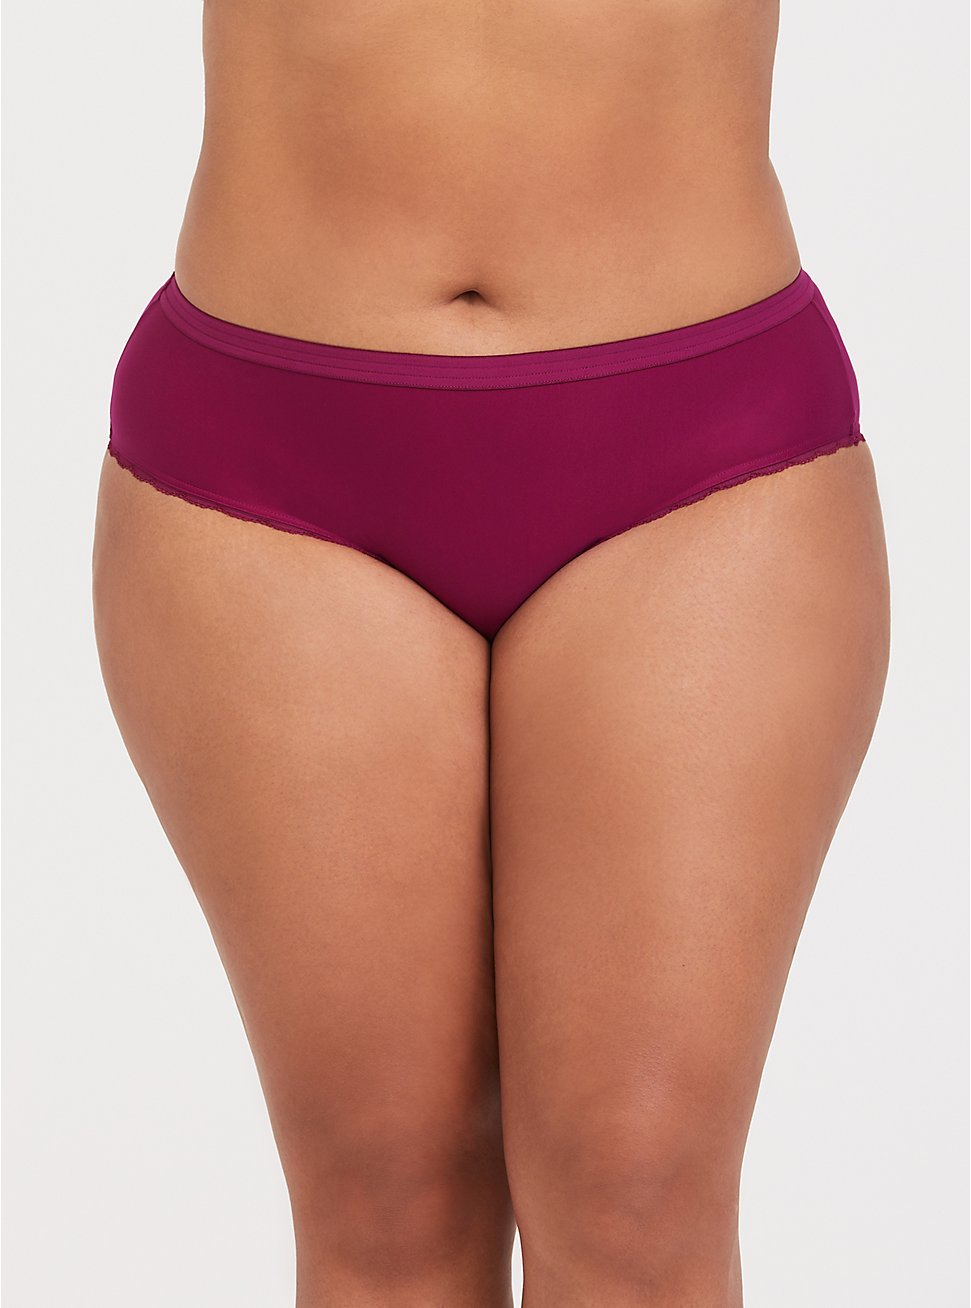 Super Soft Berry Purple Microfiber Hipster Panty, GRAPE SEED, hi-res